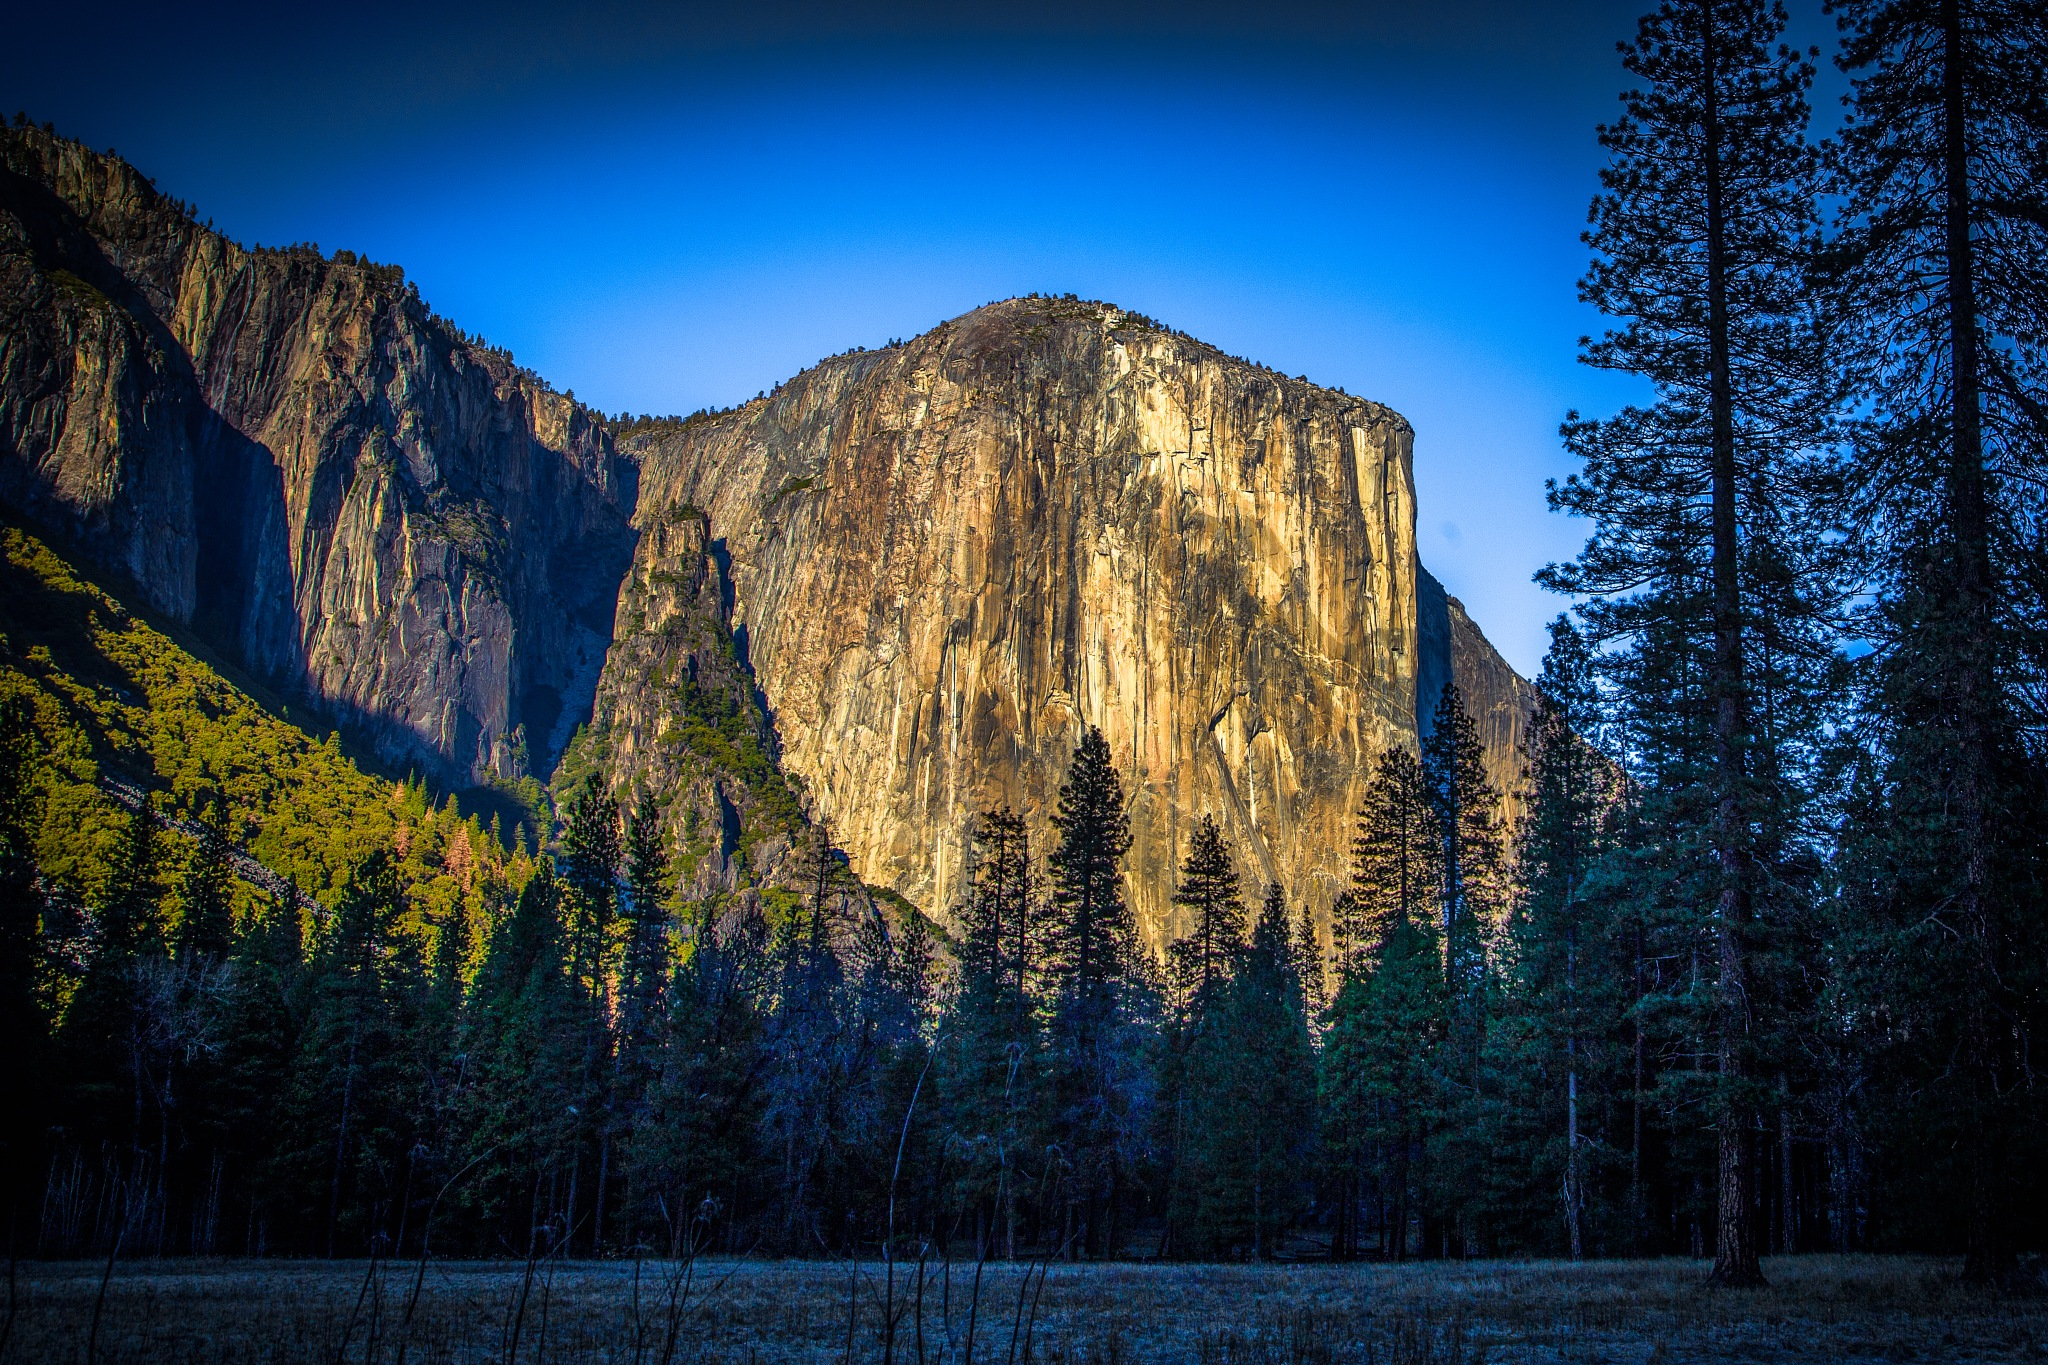 Yosemite, El Capitan by volkhard sturzbecher